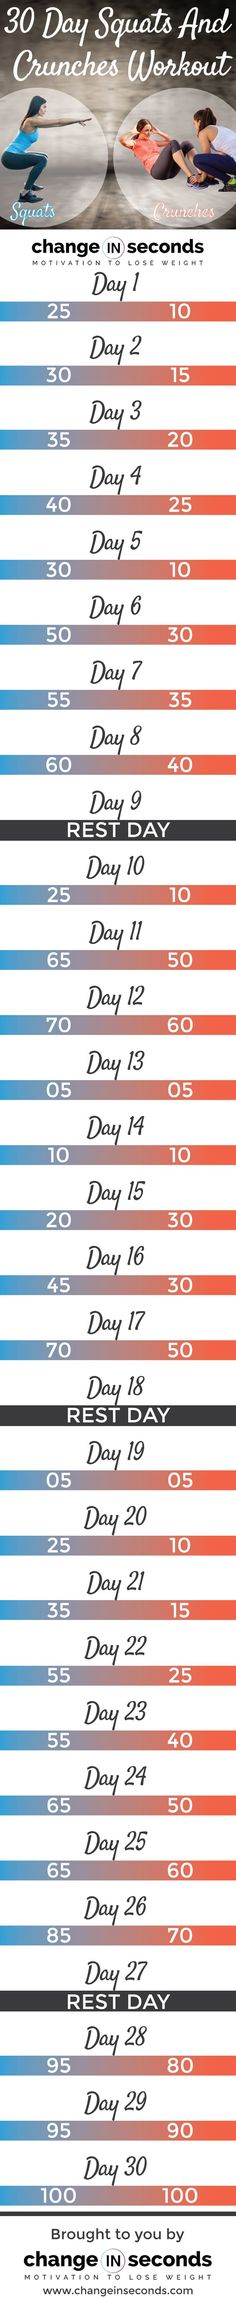 30 Day Squats And Crunches Workout